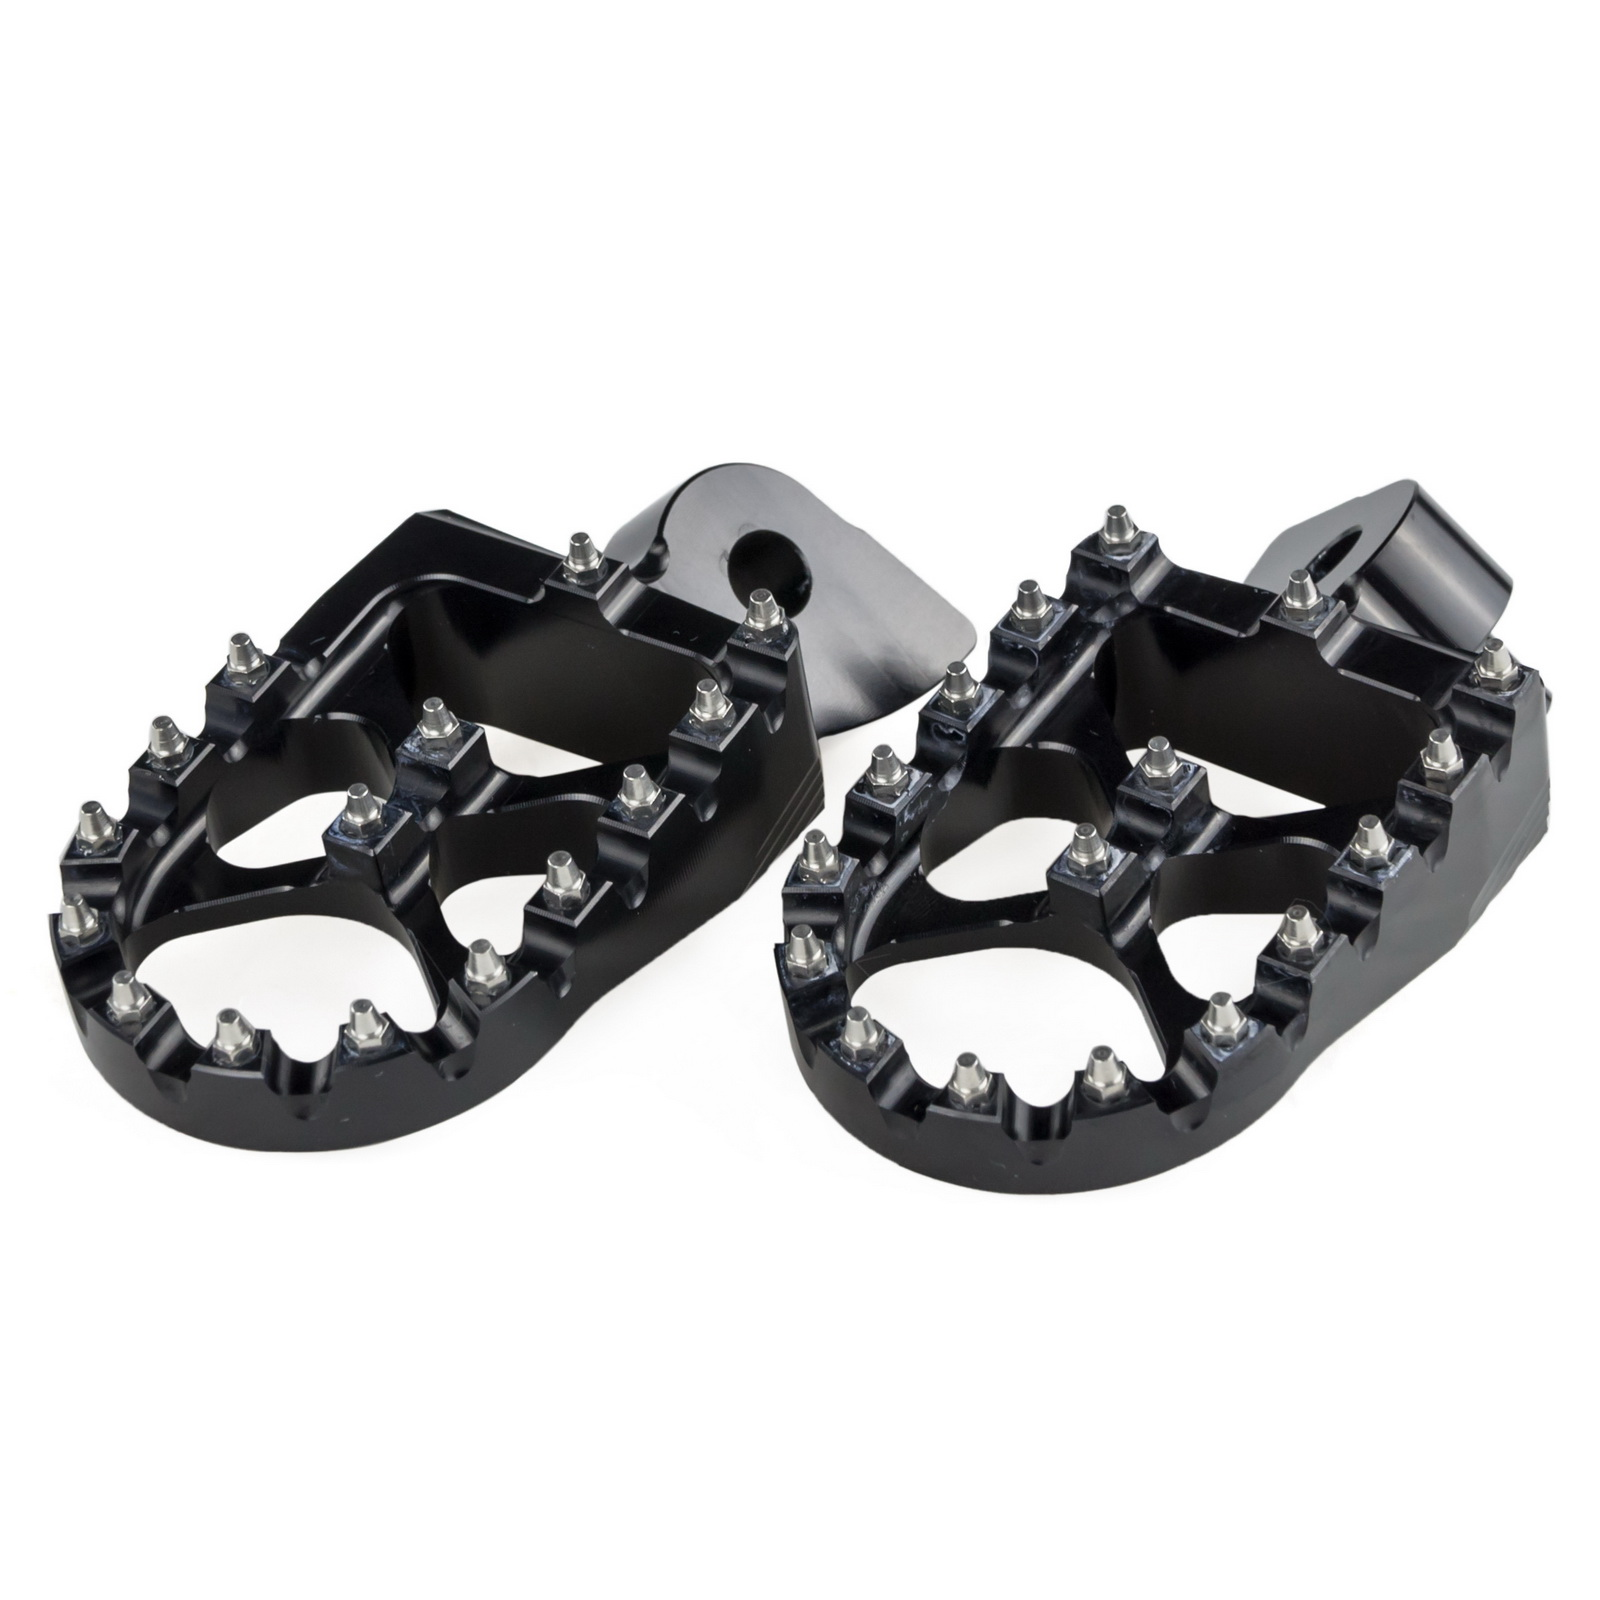 Motorcycle Footrests Foot Peg For Yamaha YZ 85 125 250 125X 250X 250FX 450FX YZ WR 250F 450F 97-2016 2017 2018 2019 YZ125 YZ250Motorcycle Footrests Foot Peg For Yamaha YZ 85 125 250 125X 250X 250FX 450FX YZ WR 250F 450F 97-2016 2017 2018 2019 YZ125 YZ250